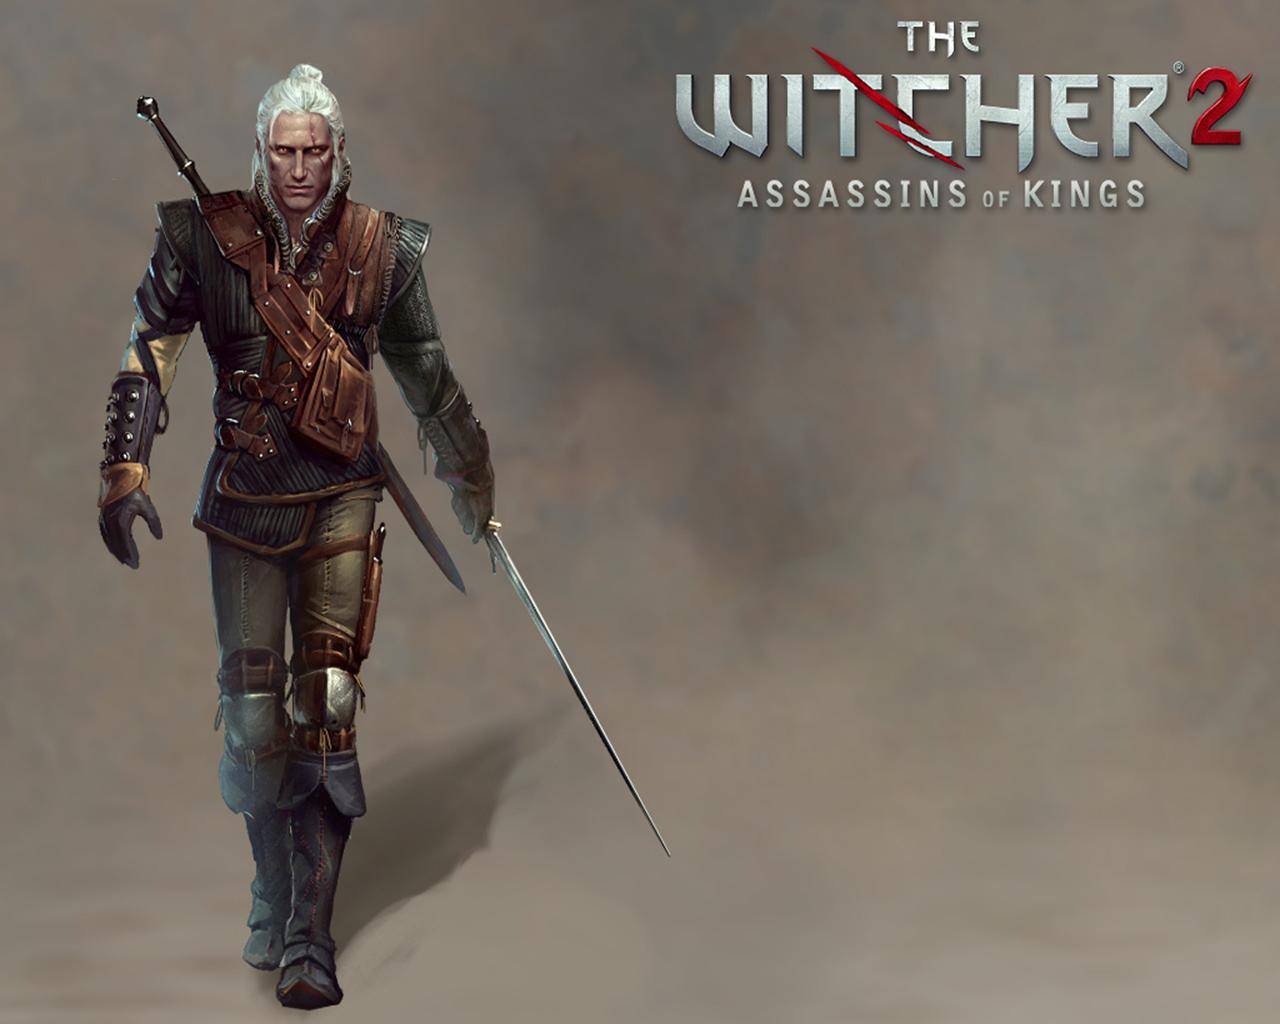 Image The Witcher The Witcher 2 Assassins of Kings Geralt of Rivia 1280x1024